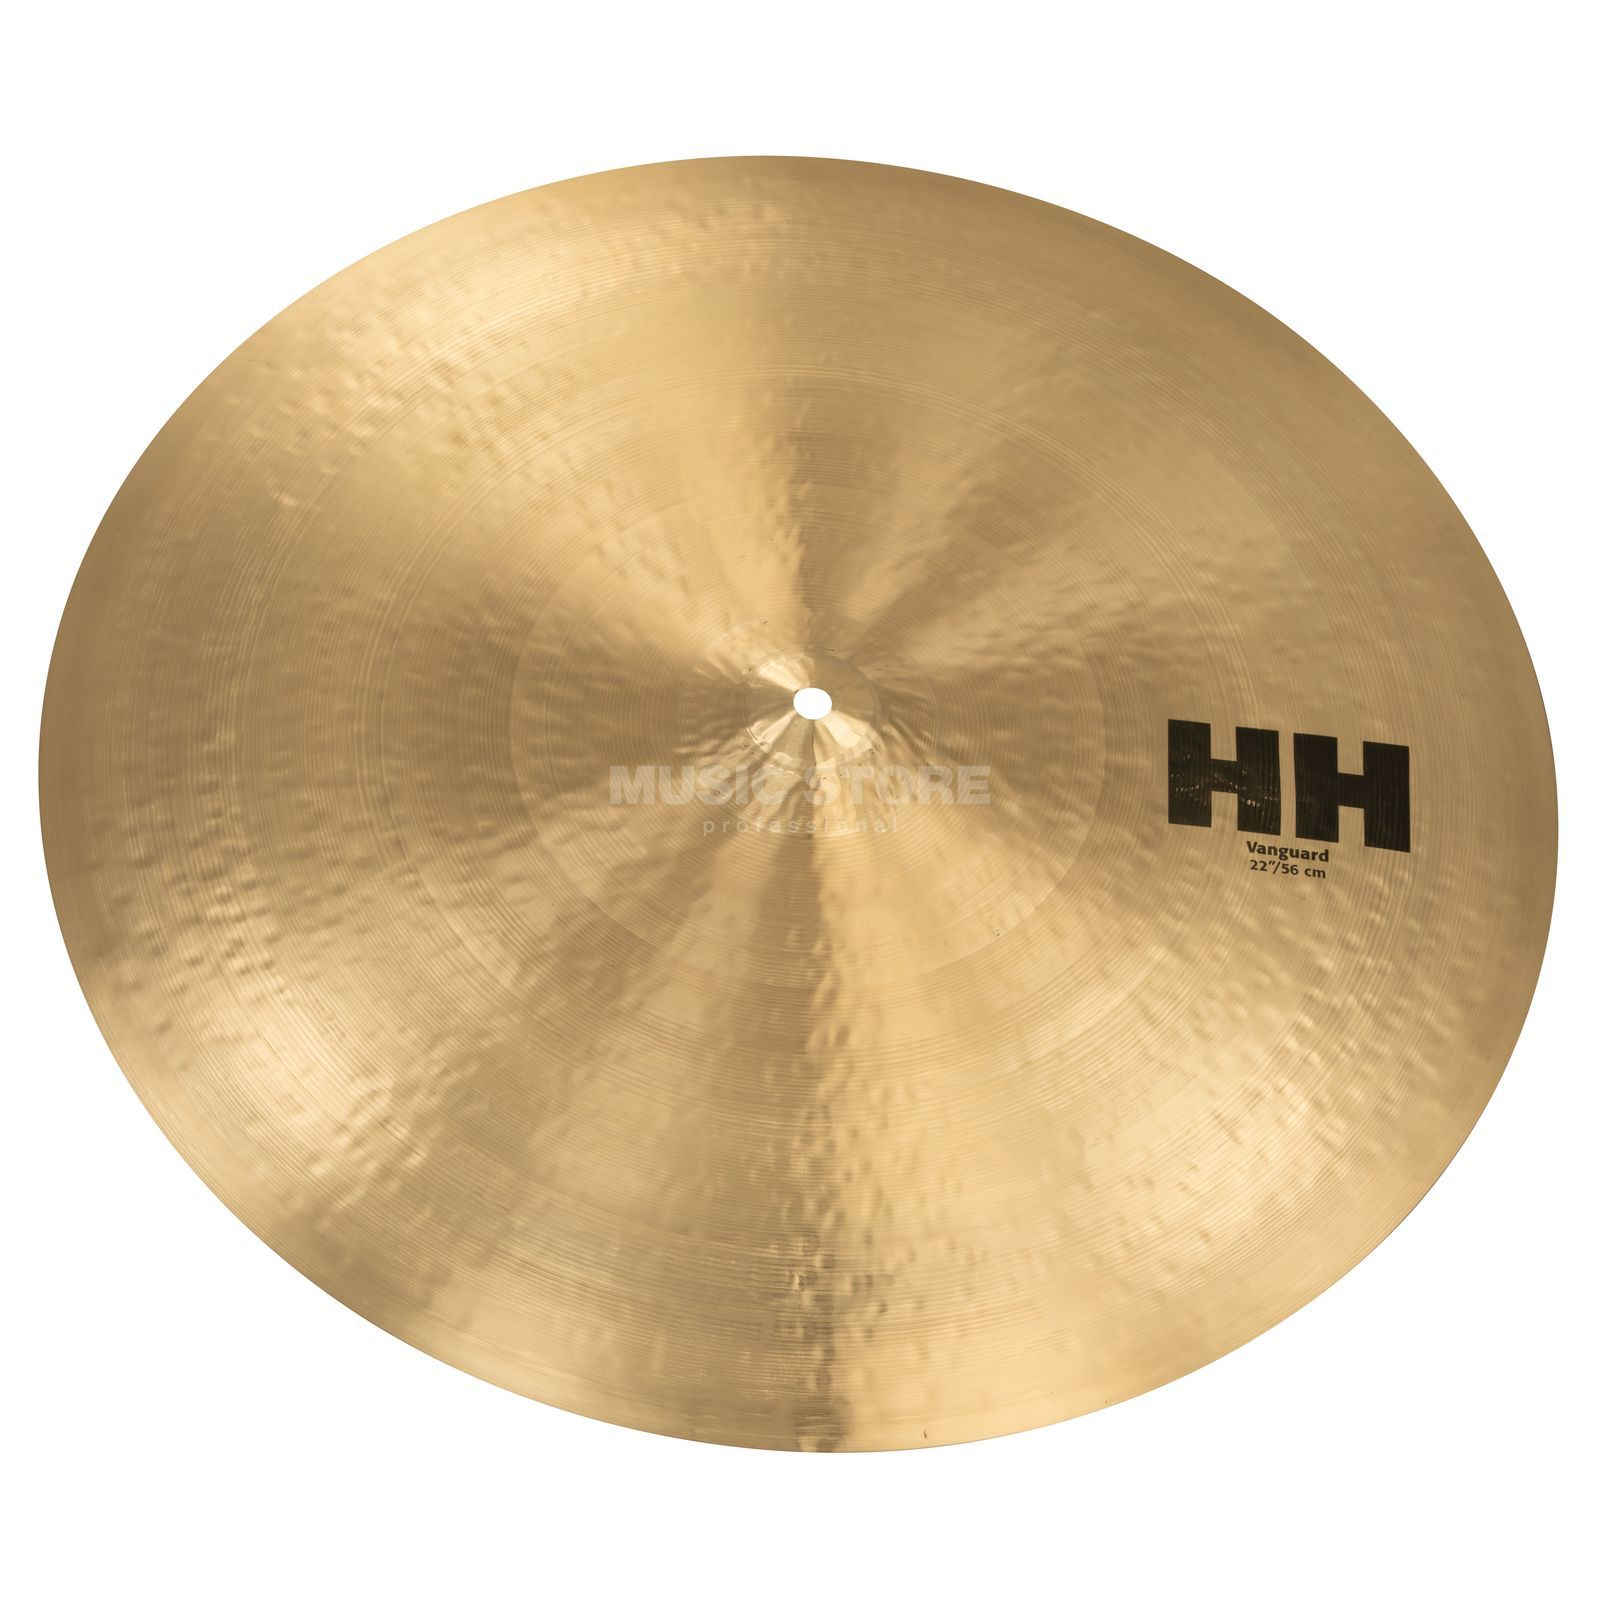 "Sabian HH Vanguard Ride 22"", Remastered Product Image"